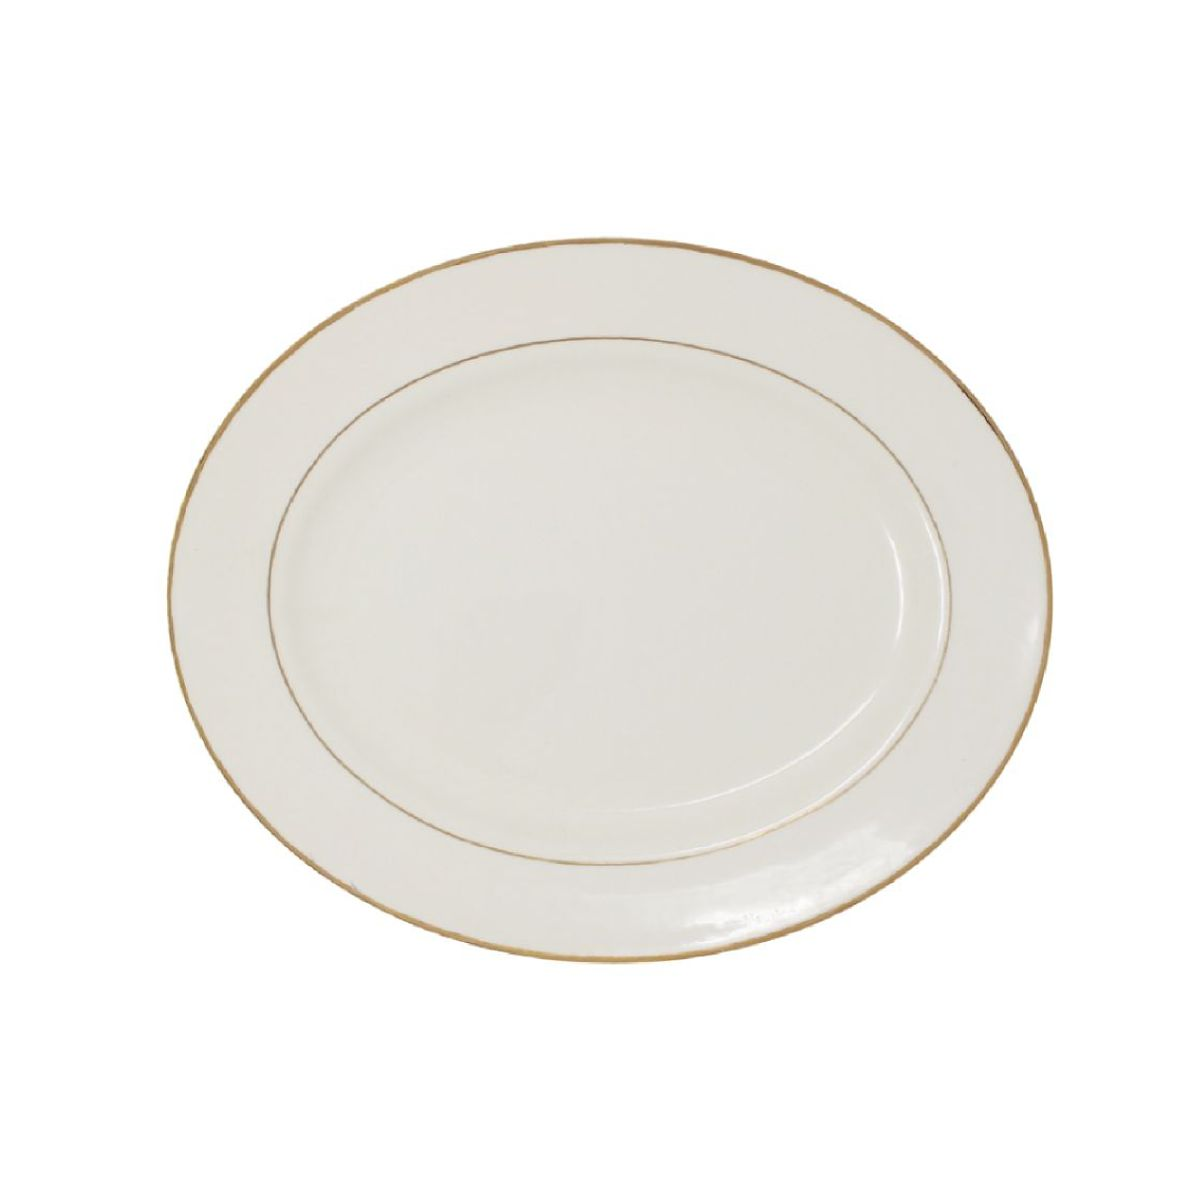 Platter Beige With Gold Band 12""